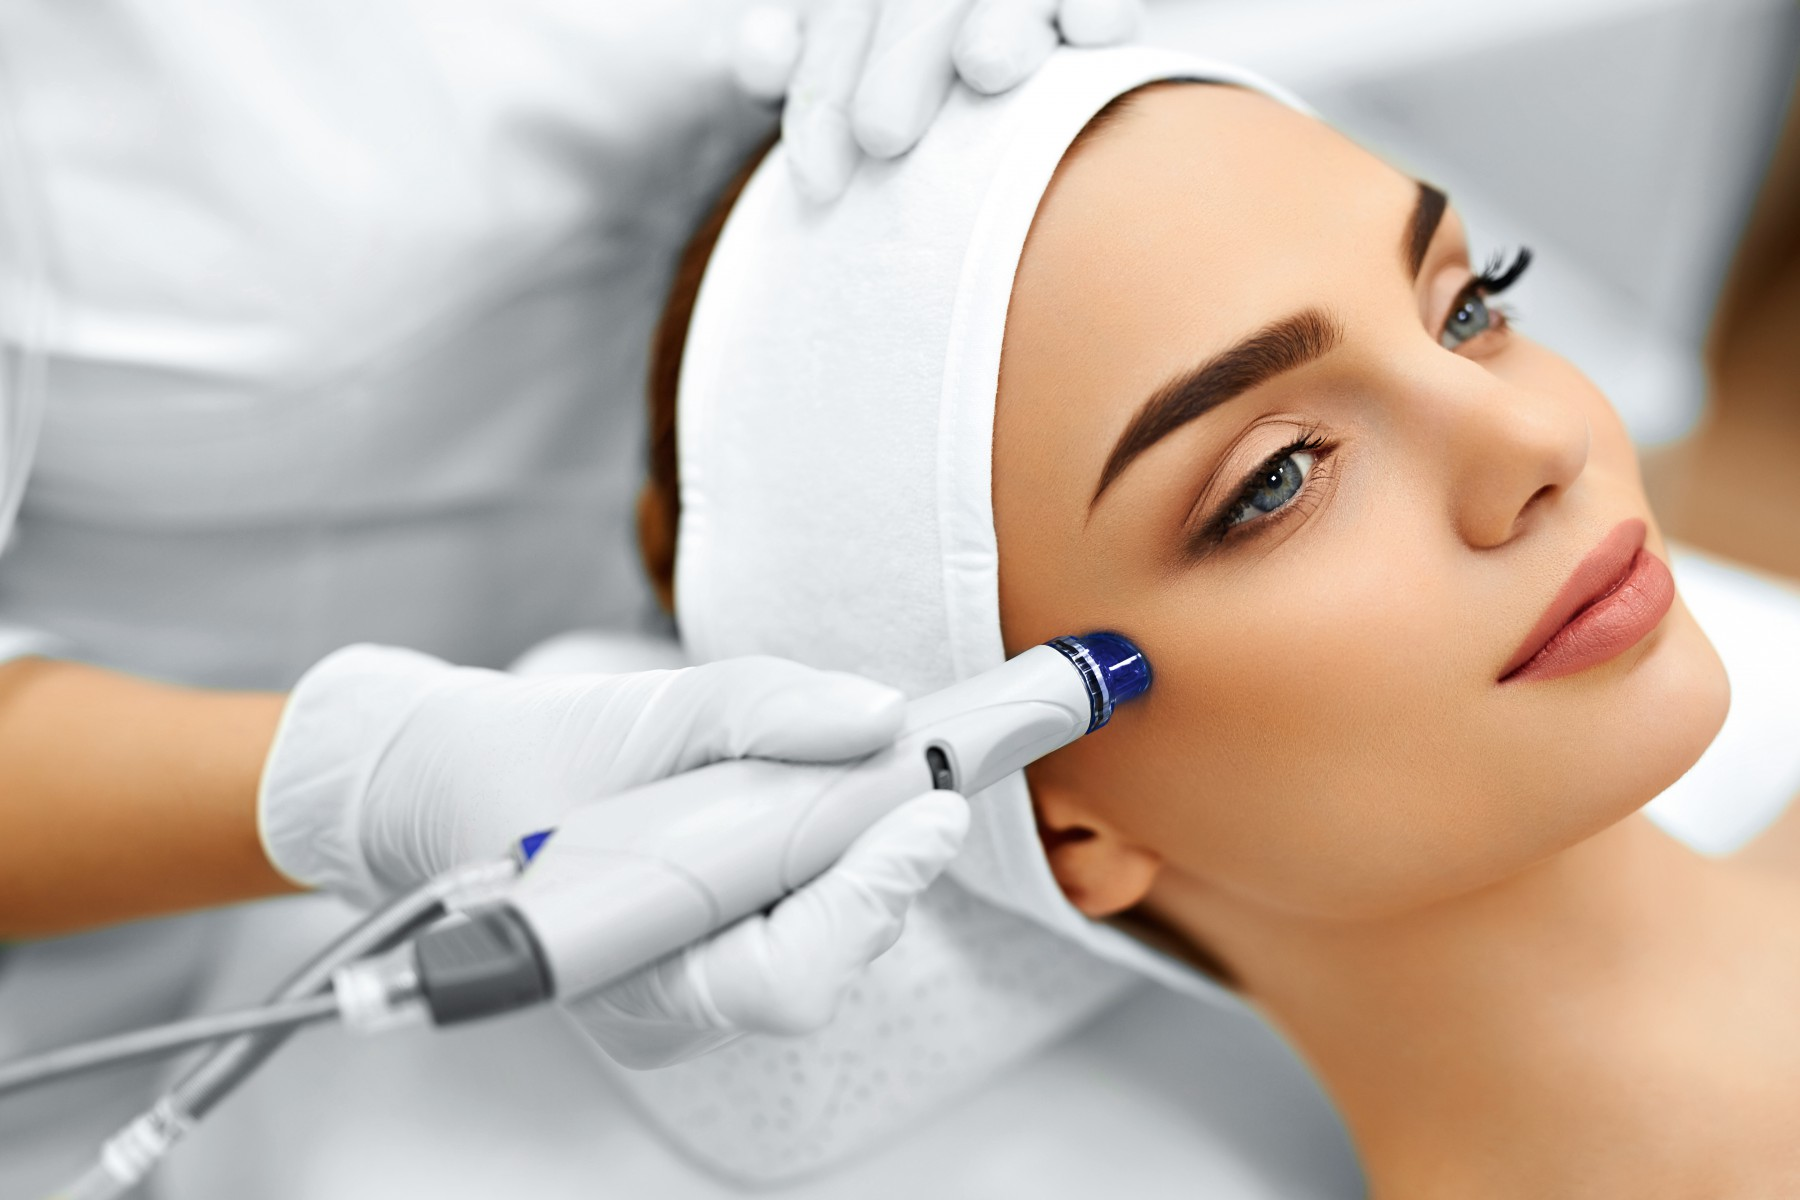 Introducing the HydraFacial